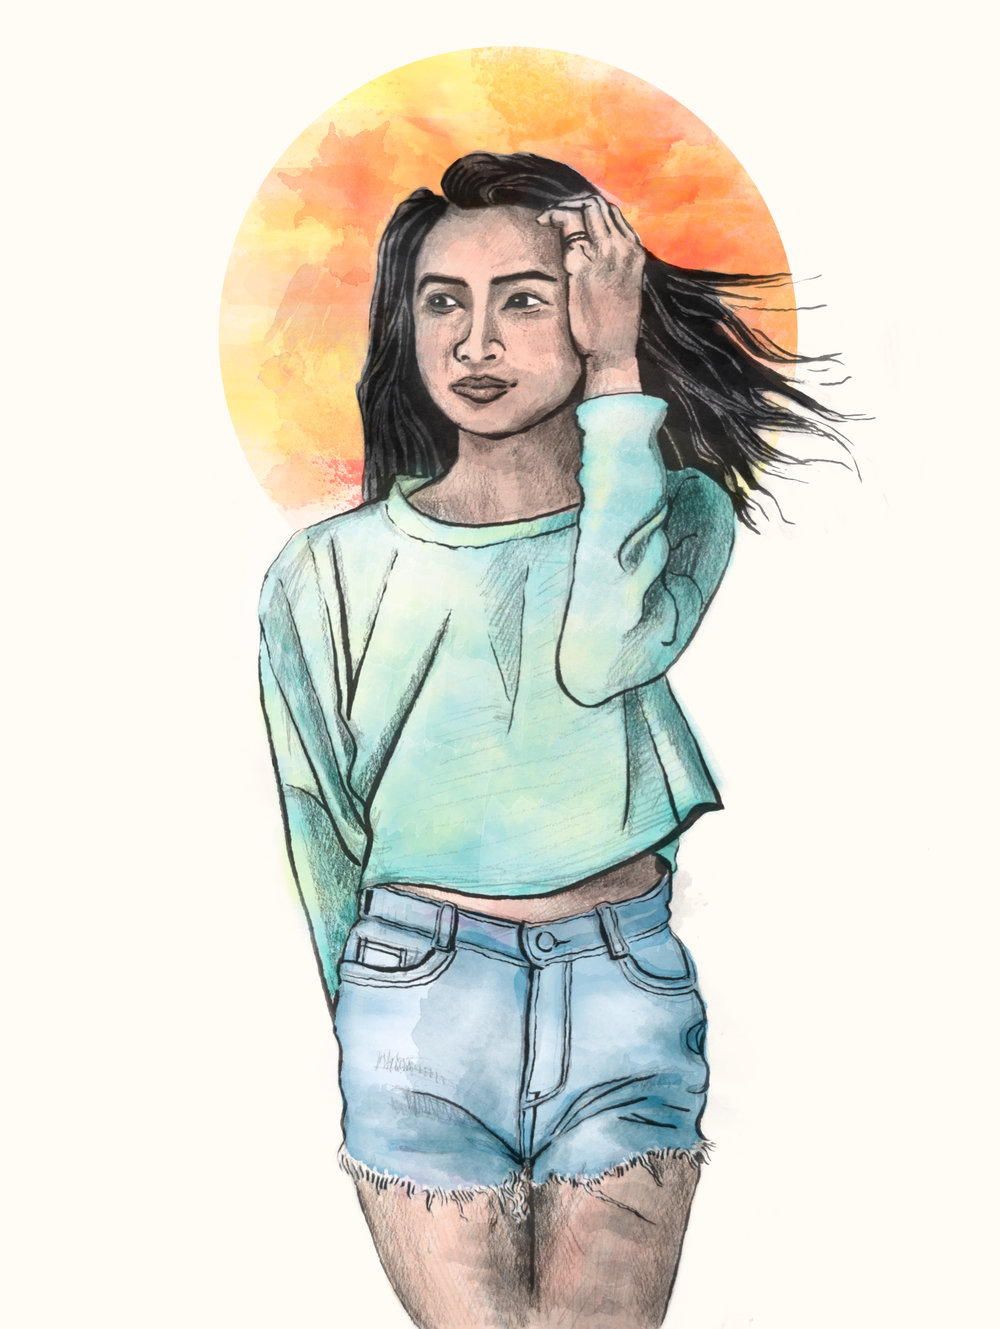 Portrait // ink, graphite, digital color // July 2018